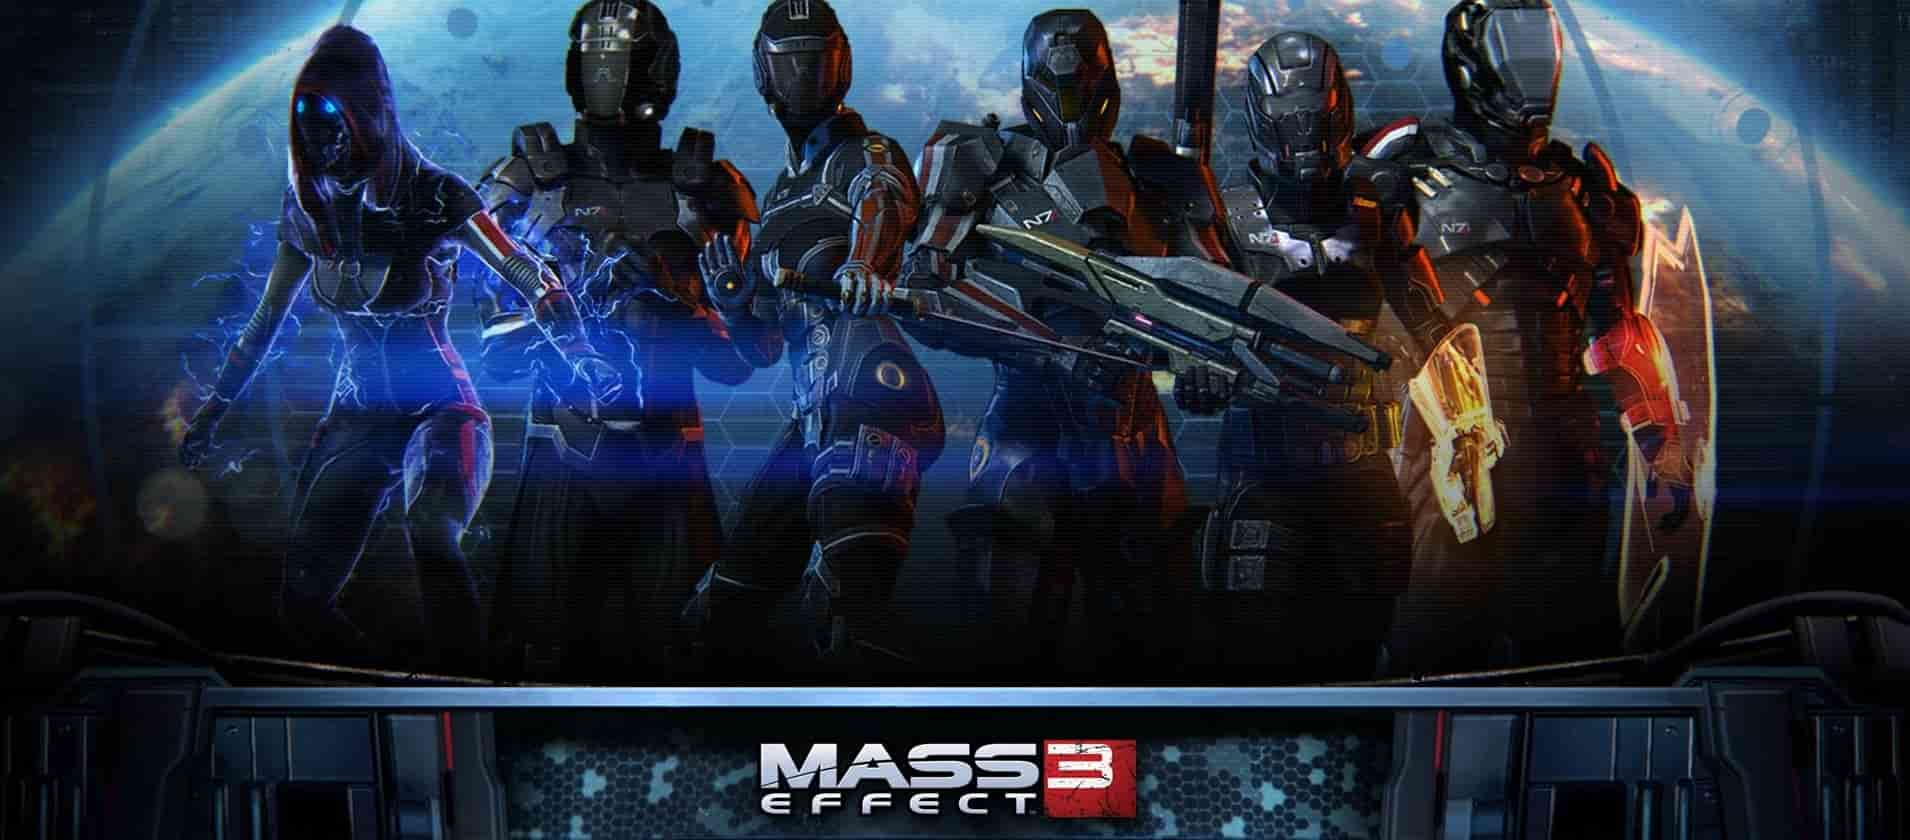 mass effect 3 hd wallpapers hd 69566 6782845.png min 1 - اورجینال اریجین  Mass Effect 3